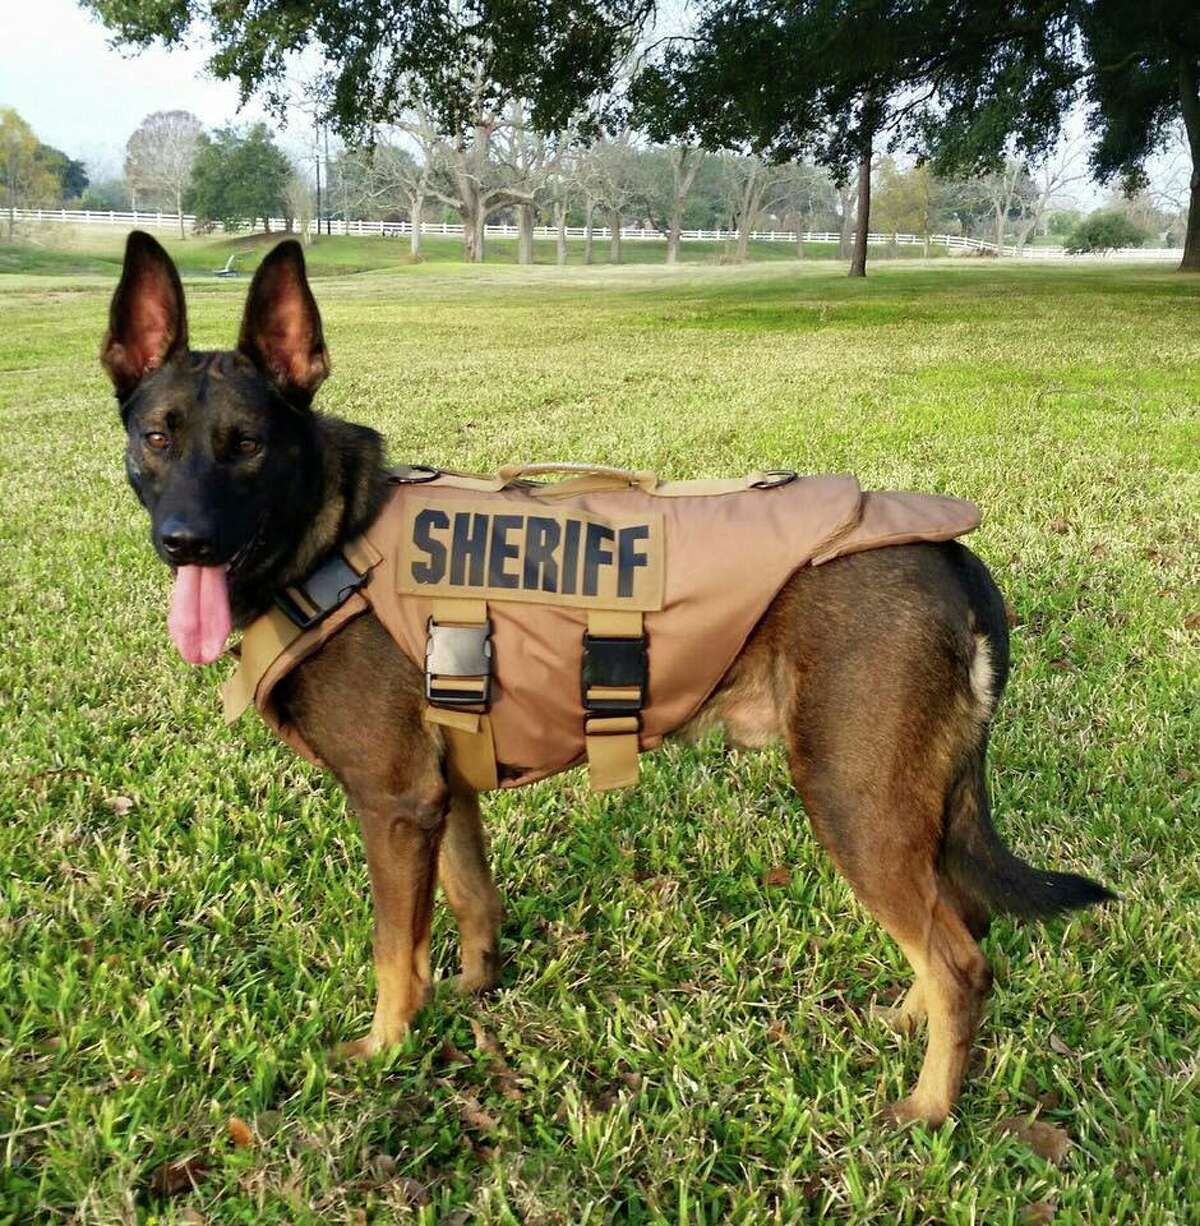 Venomousanimals K9 Rudy, the Fort Bend County Sheriff's Office police dog, was recently bit by a venomoussnake but is expected to make a full recovery. Click through to see the most venomoussnakes, spiders and bugs in Texas.